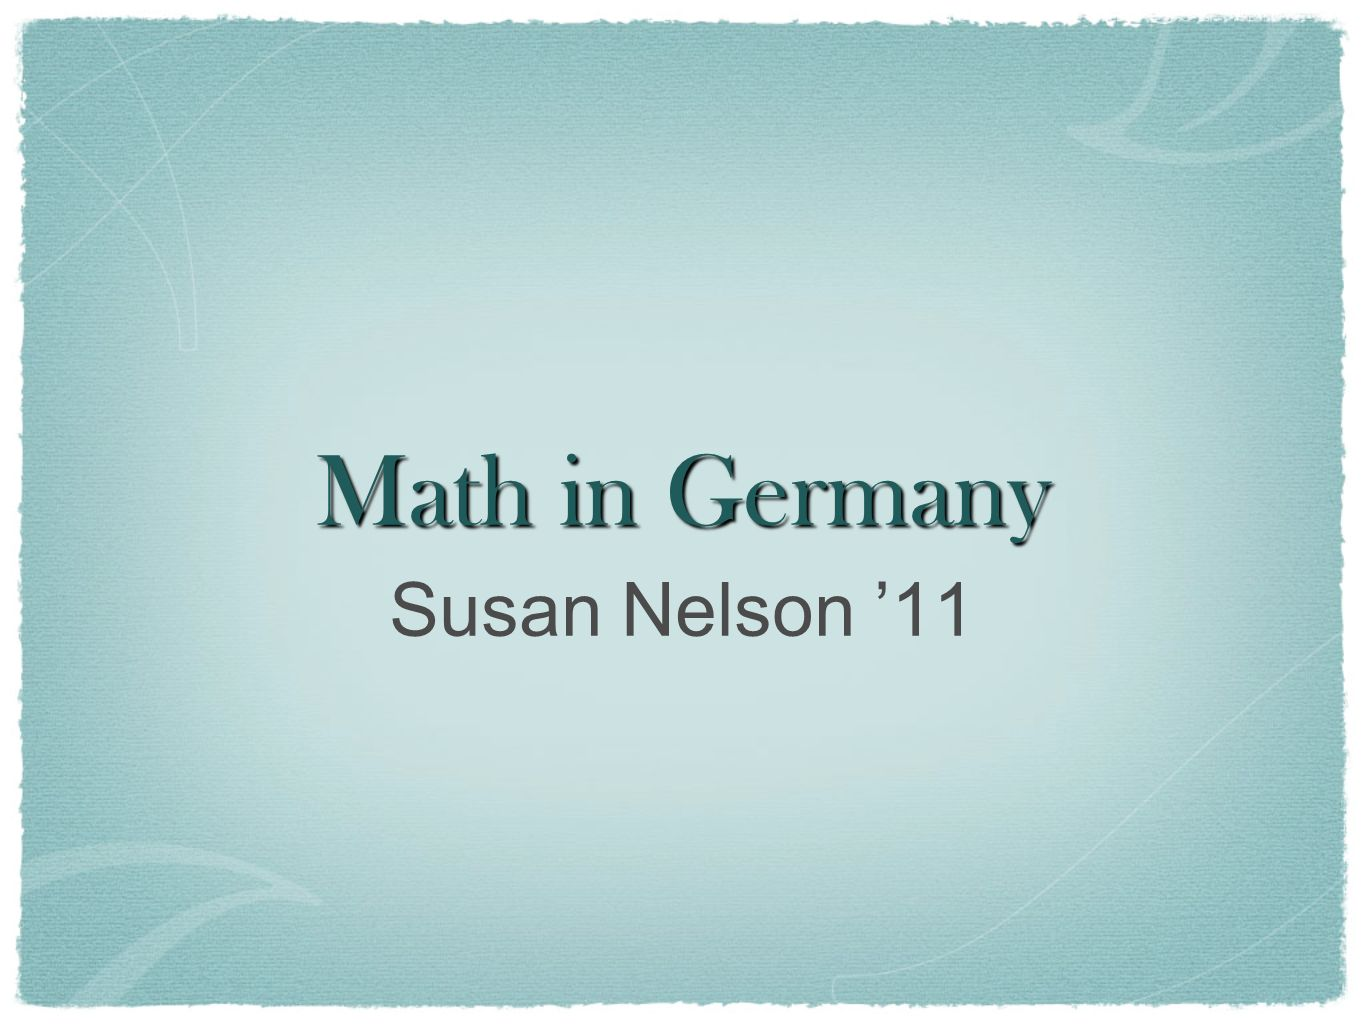 Math in Germany Susan Nelson 11